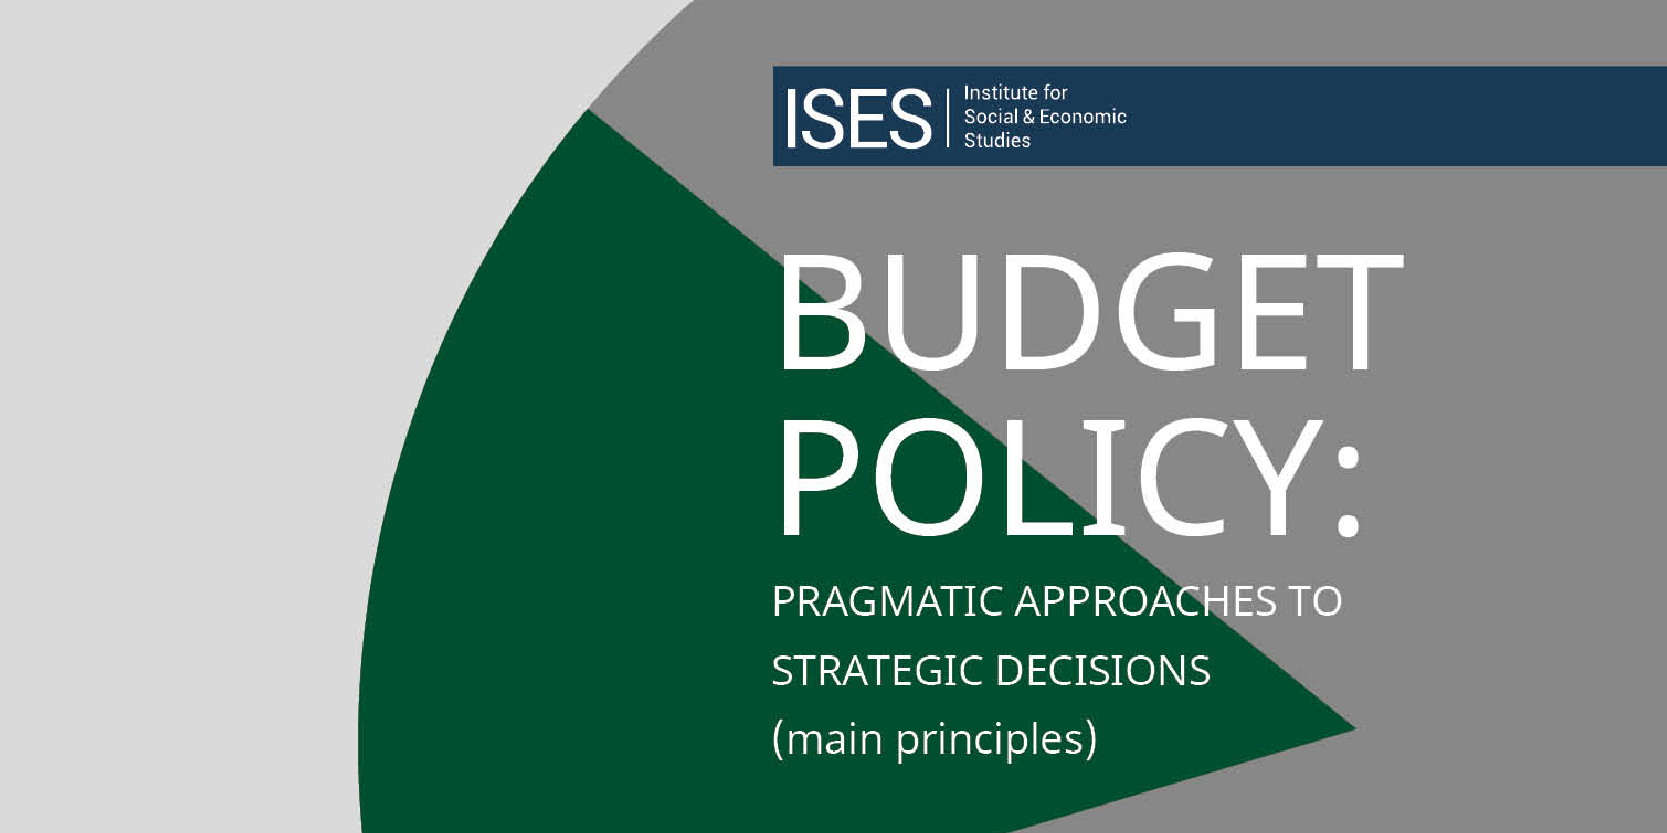 Budget policy: pragmatic approaches to strategic decisions (main principles)